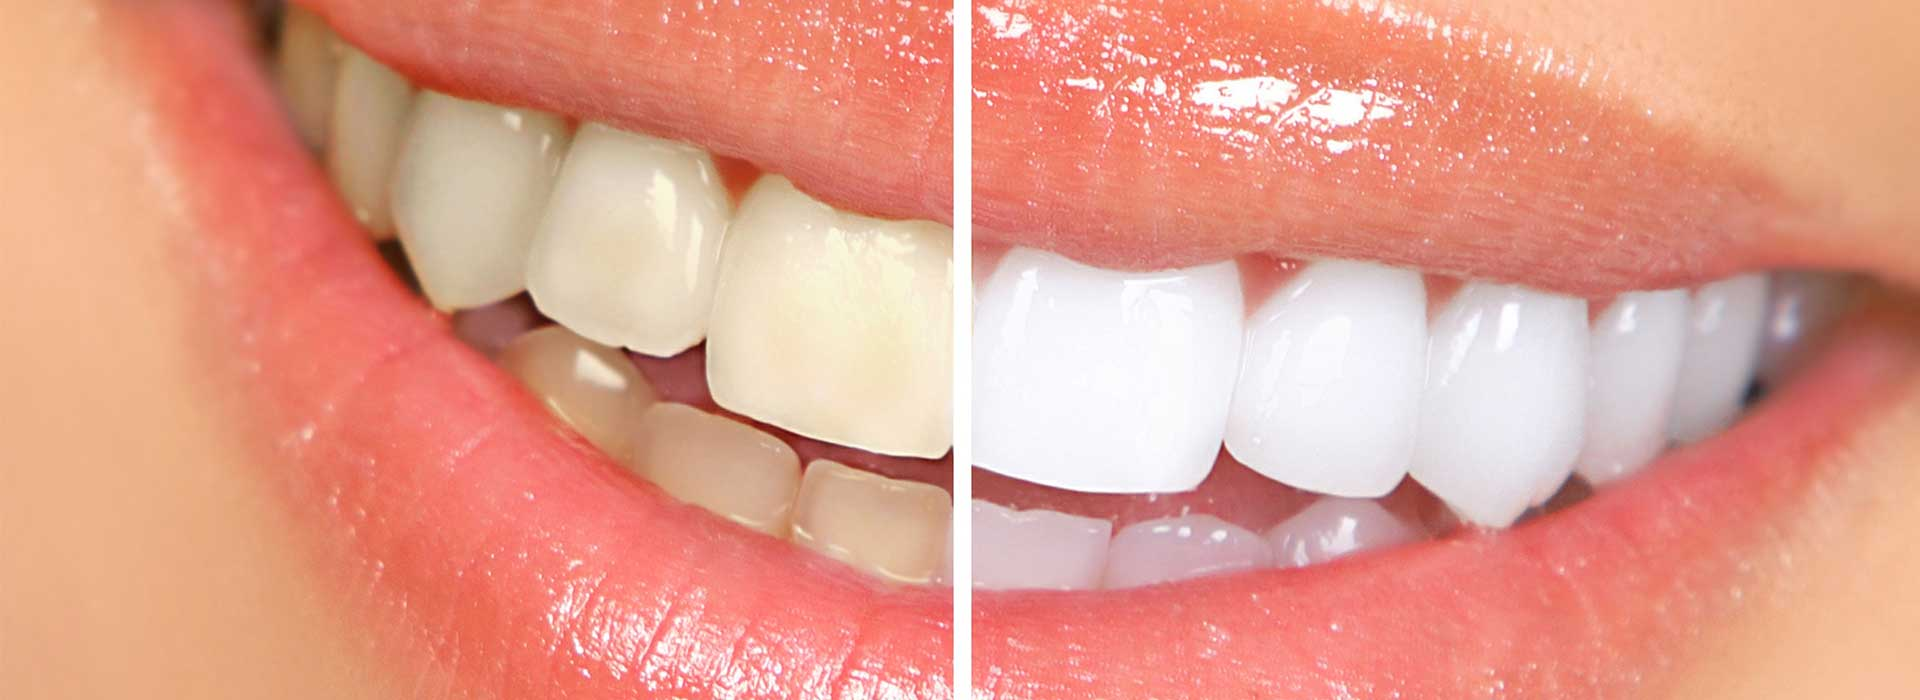 Teeth Stain_Tareedentalcare